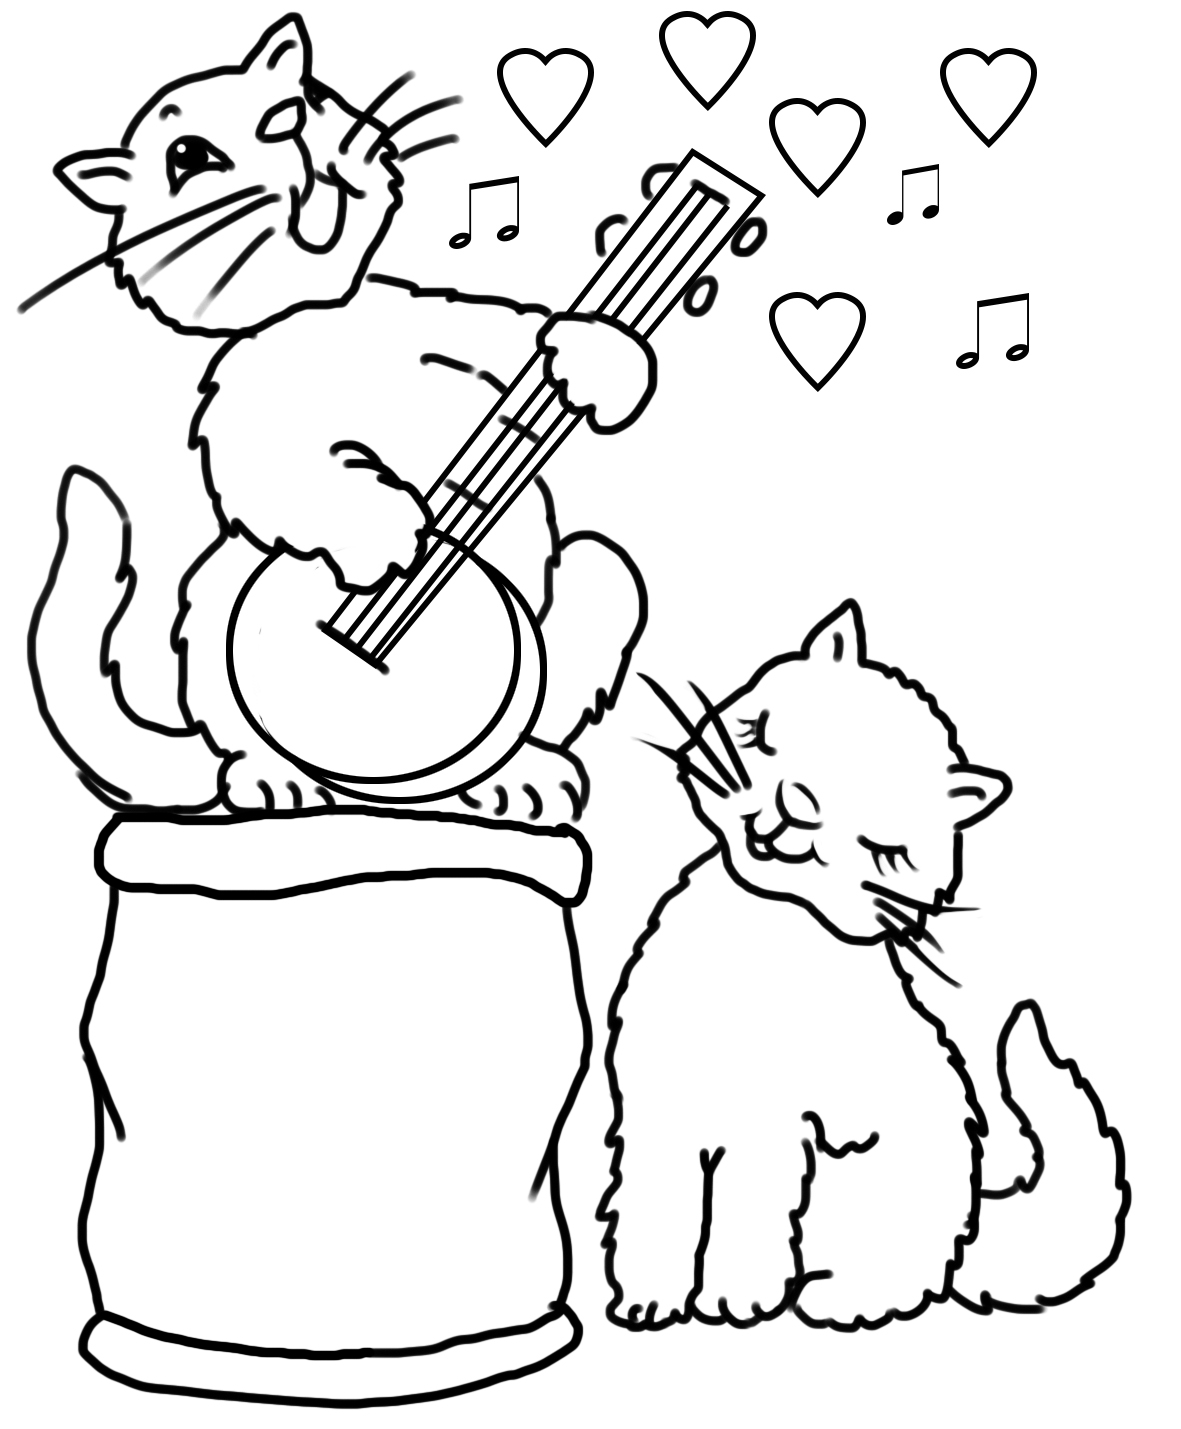 two cats in love and a love song on banjo